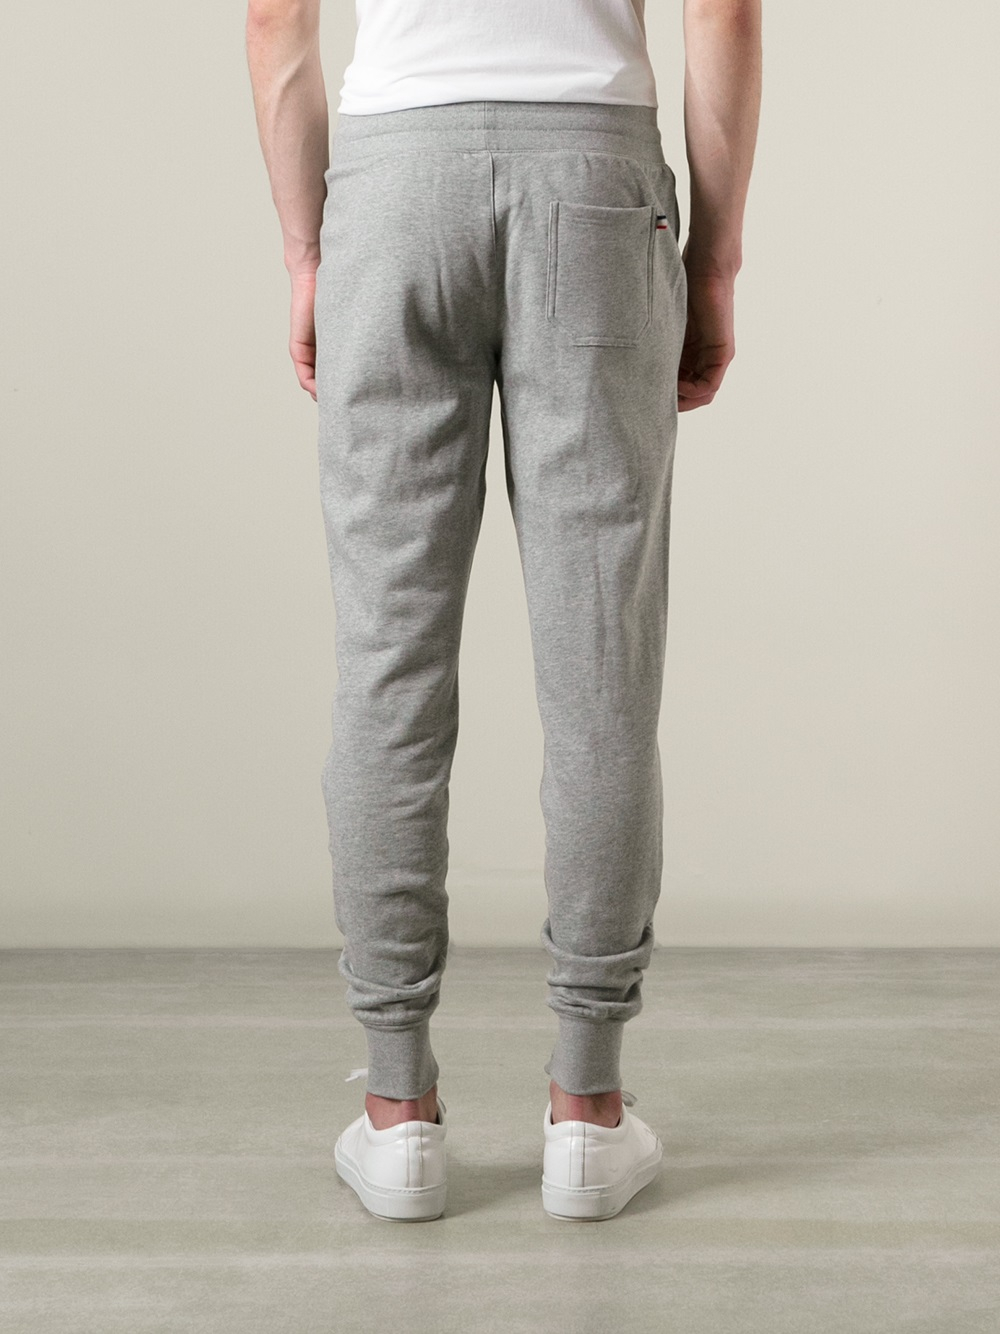 dfdefbf54 Lyst - Moncler Tapered Track Pants in Gray for Men